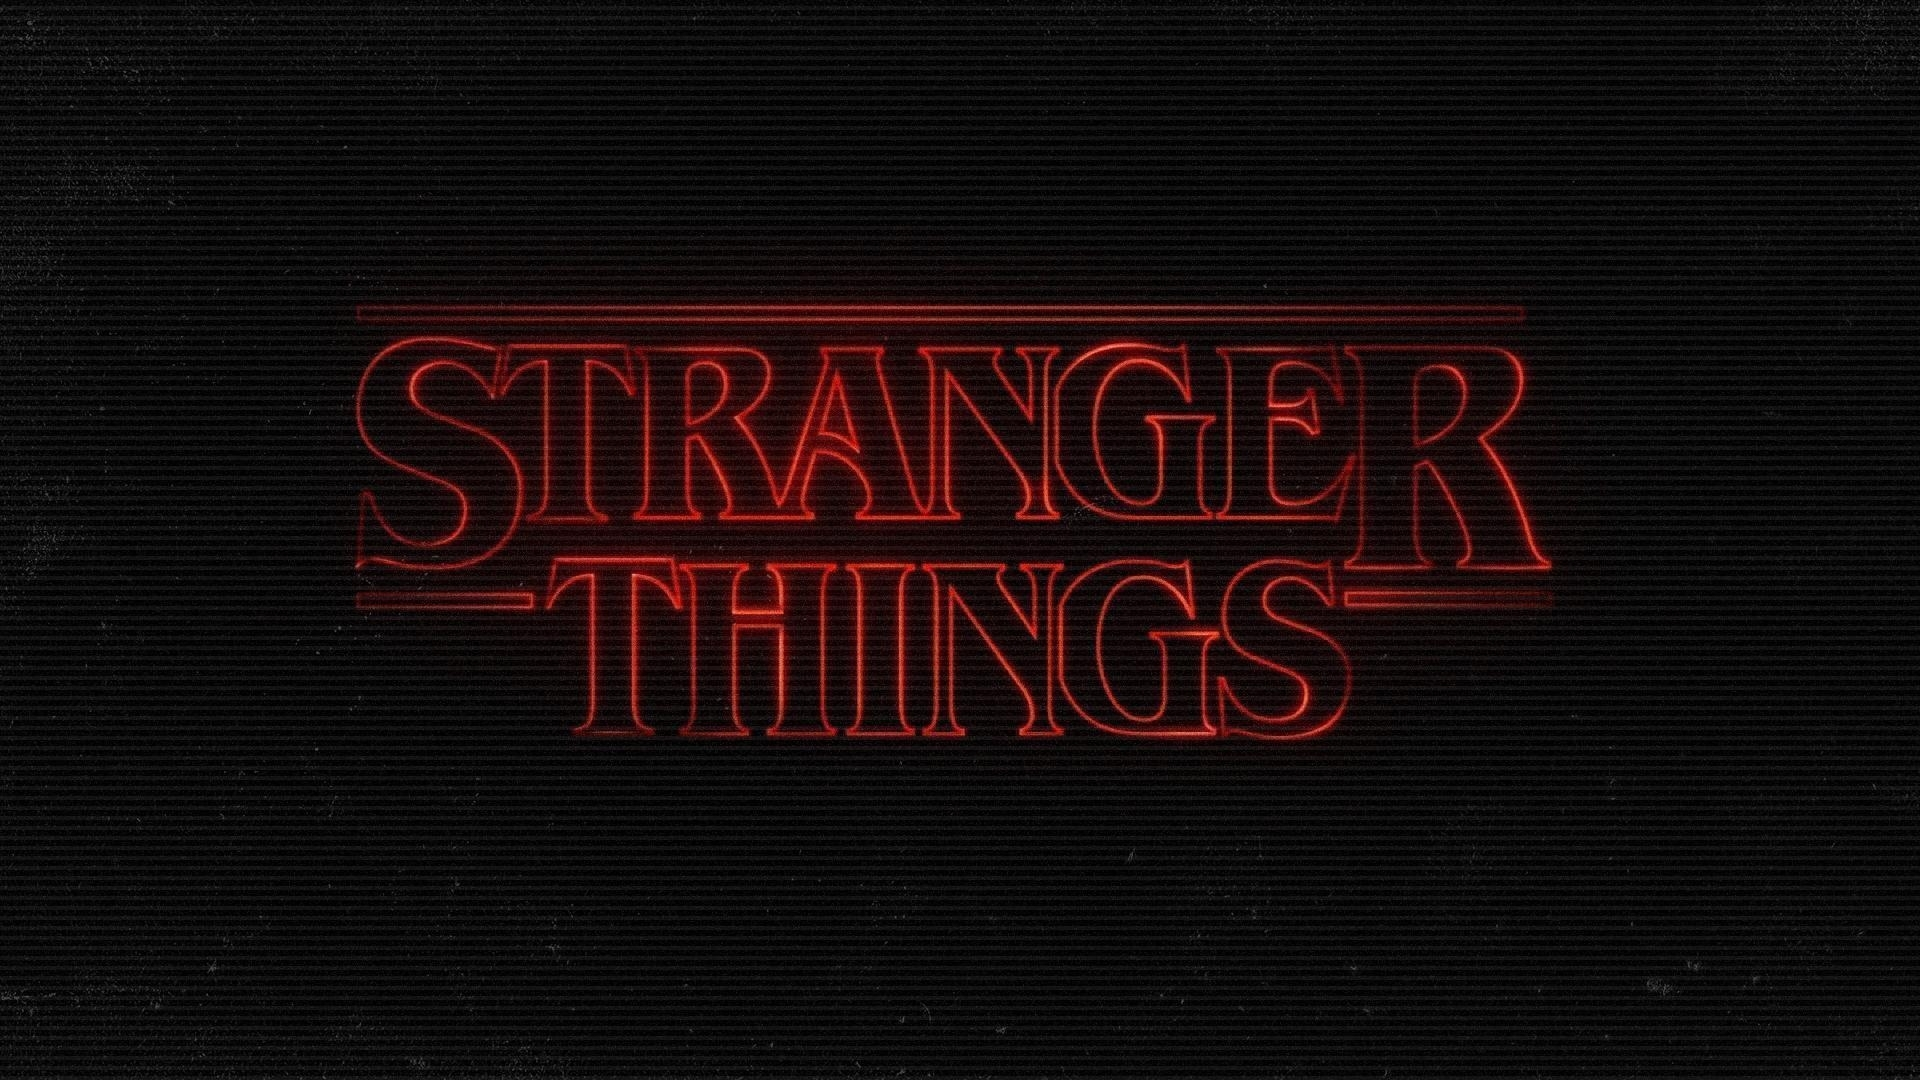 stranger things wallpapers - wallpaper cave